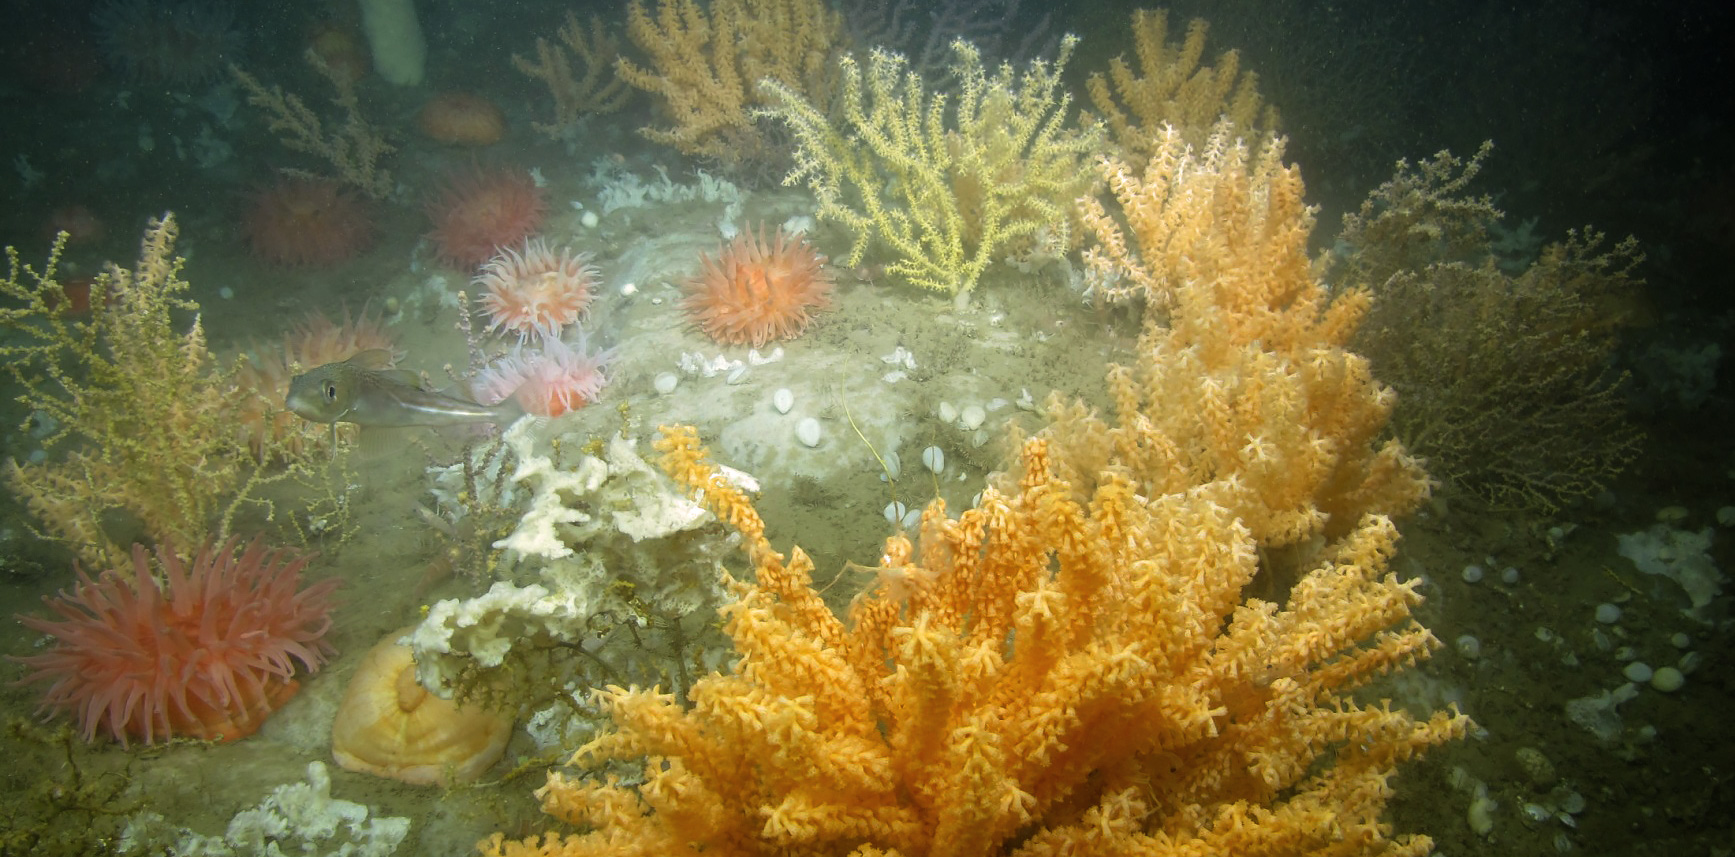 Deep-sea coral garden habitat in Western Jordan Basin, Gulf of Maine